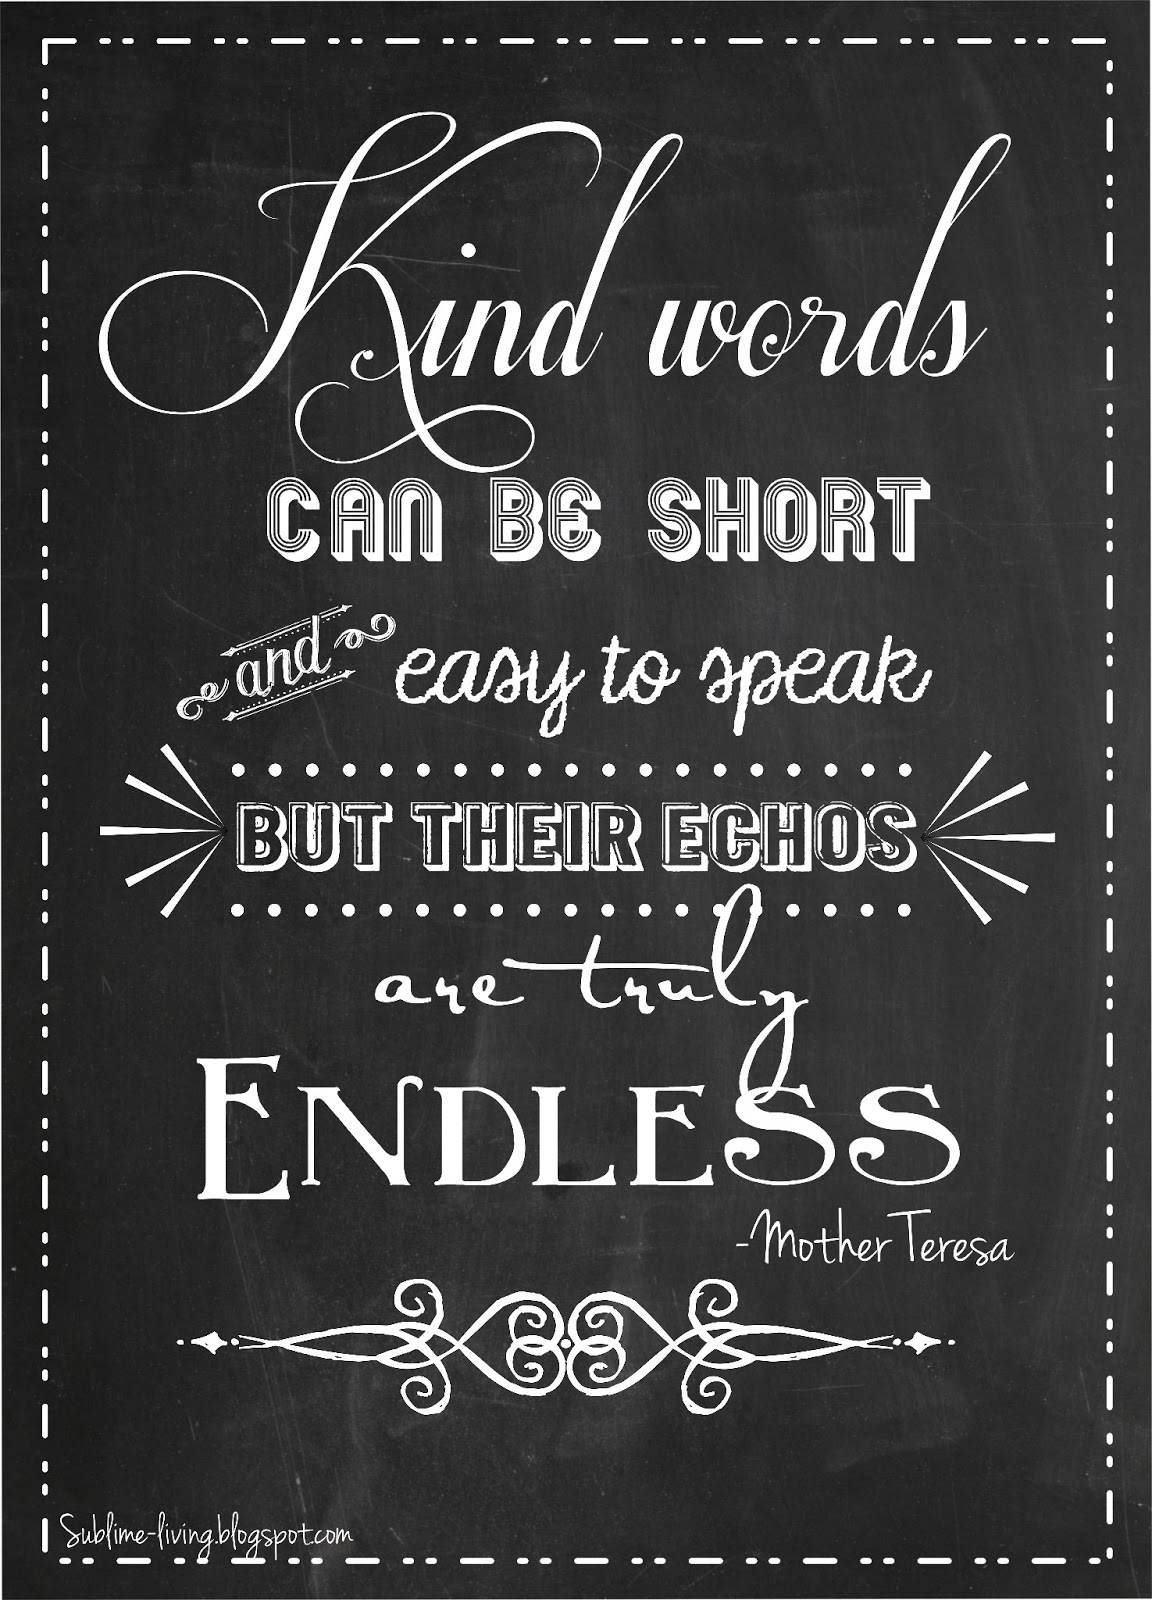 More Chalkboard Art Quote Kind Words & Love in Action